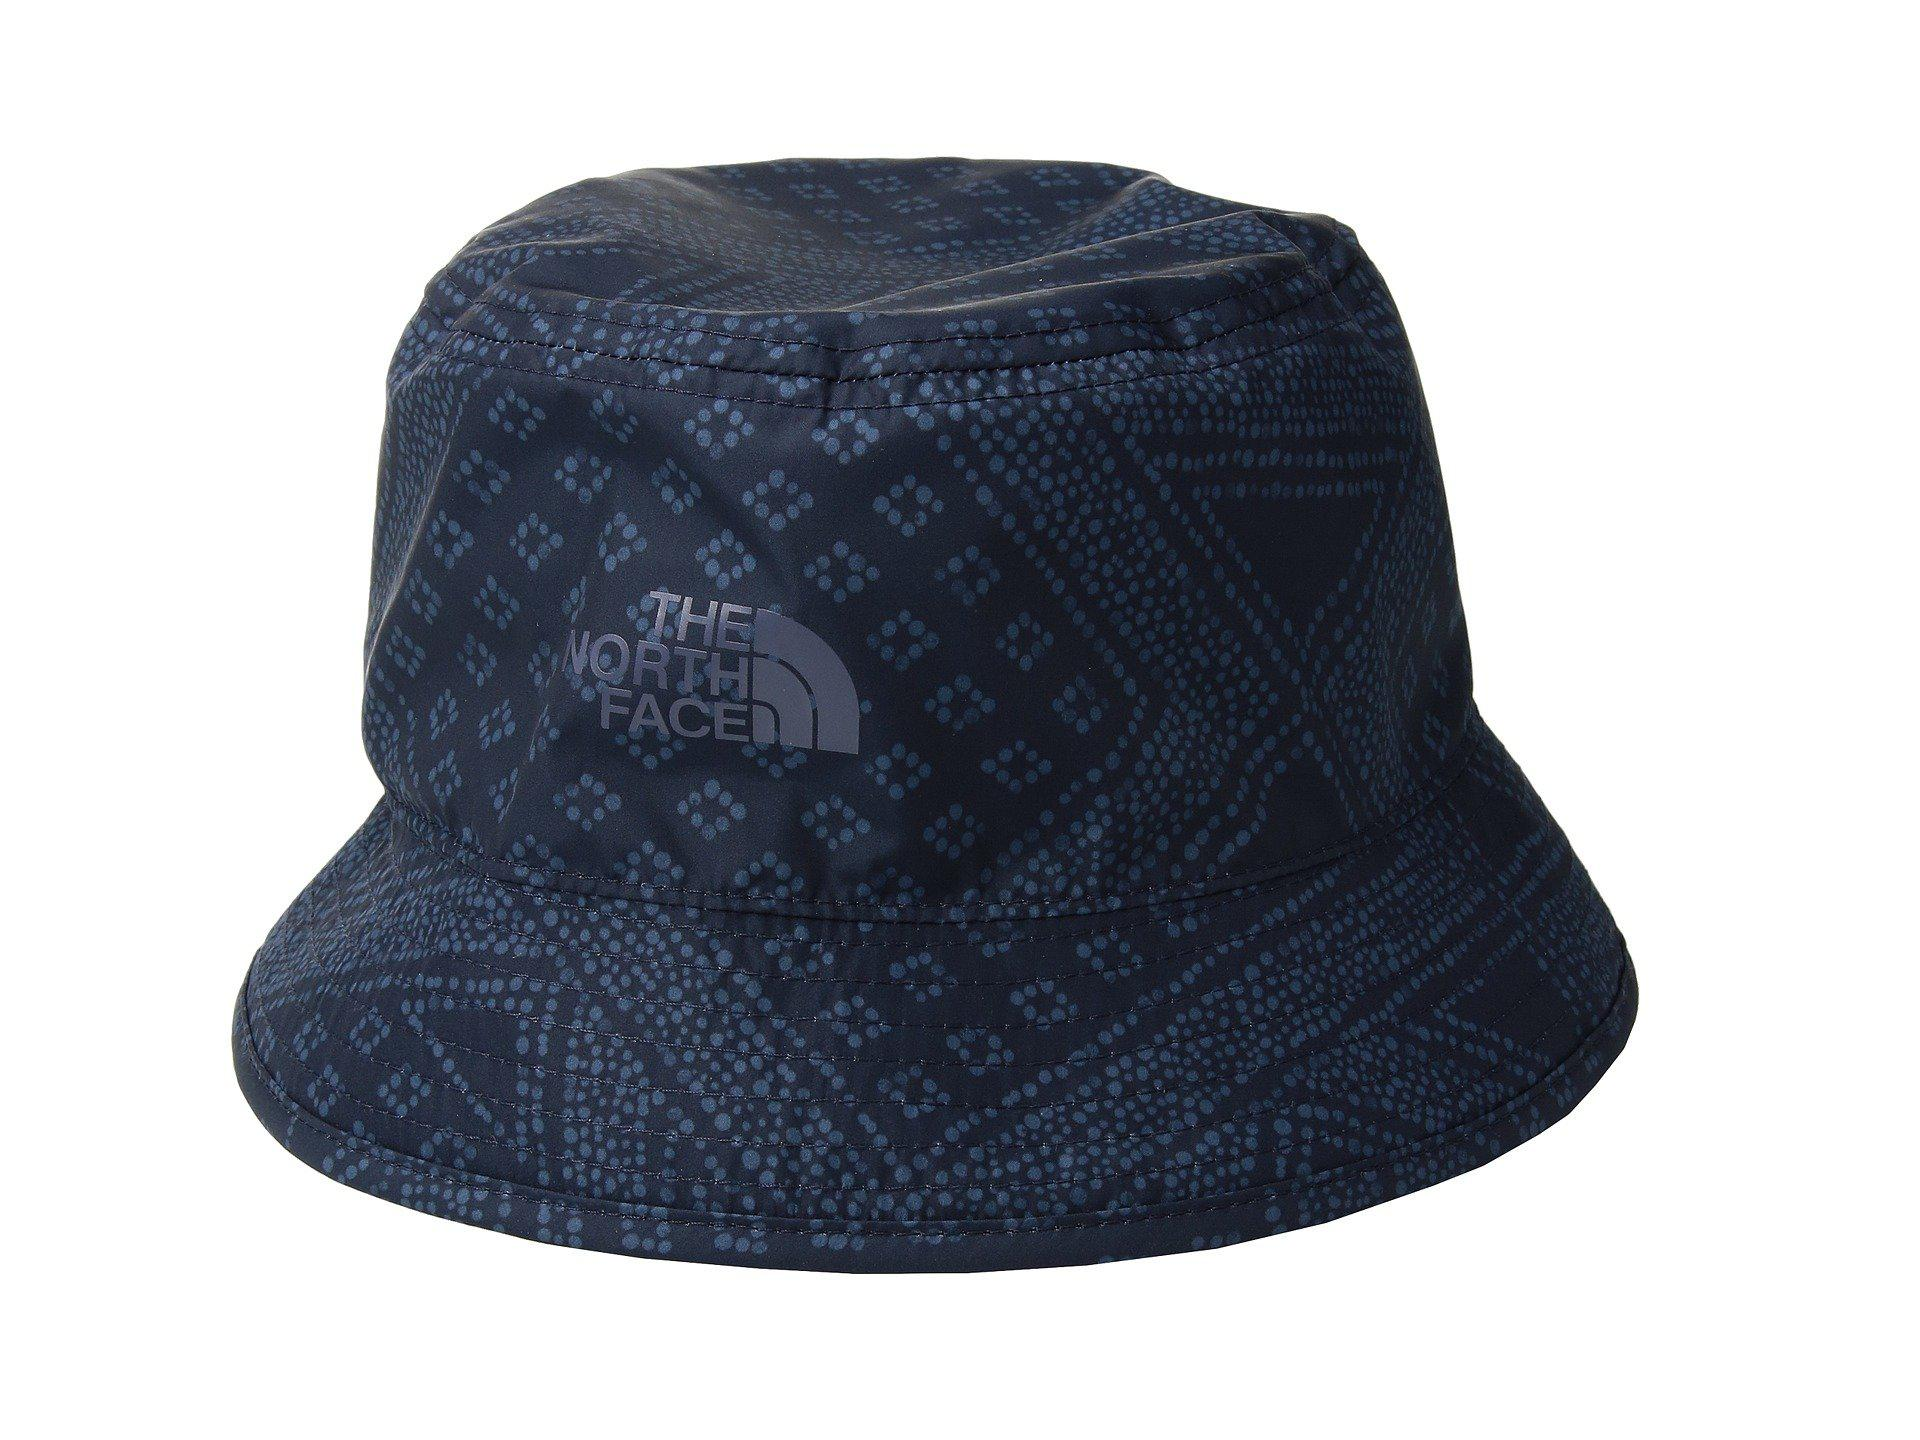 6598c91cfaac1 The North Face Sun Stash Hat (grape Leaf) Caps in Blue - Lyst